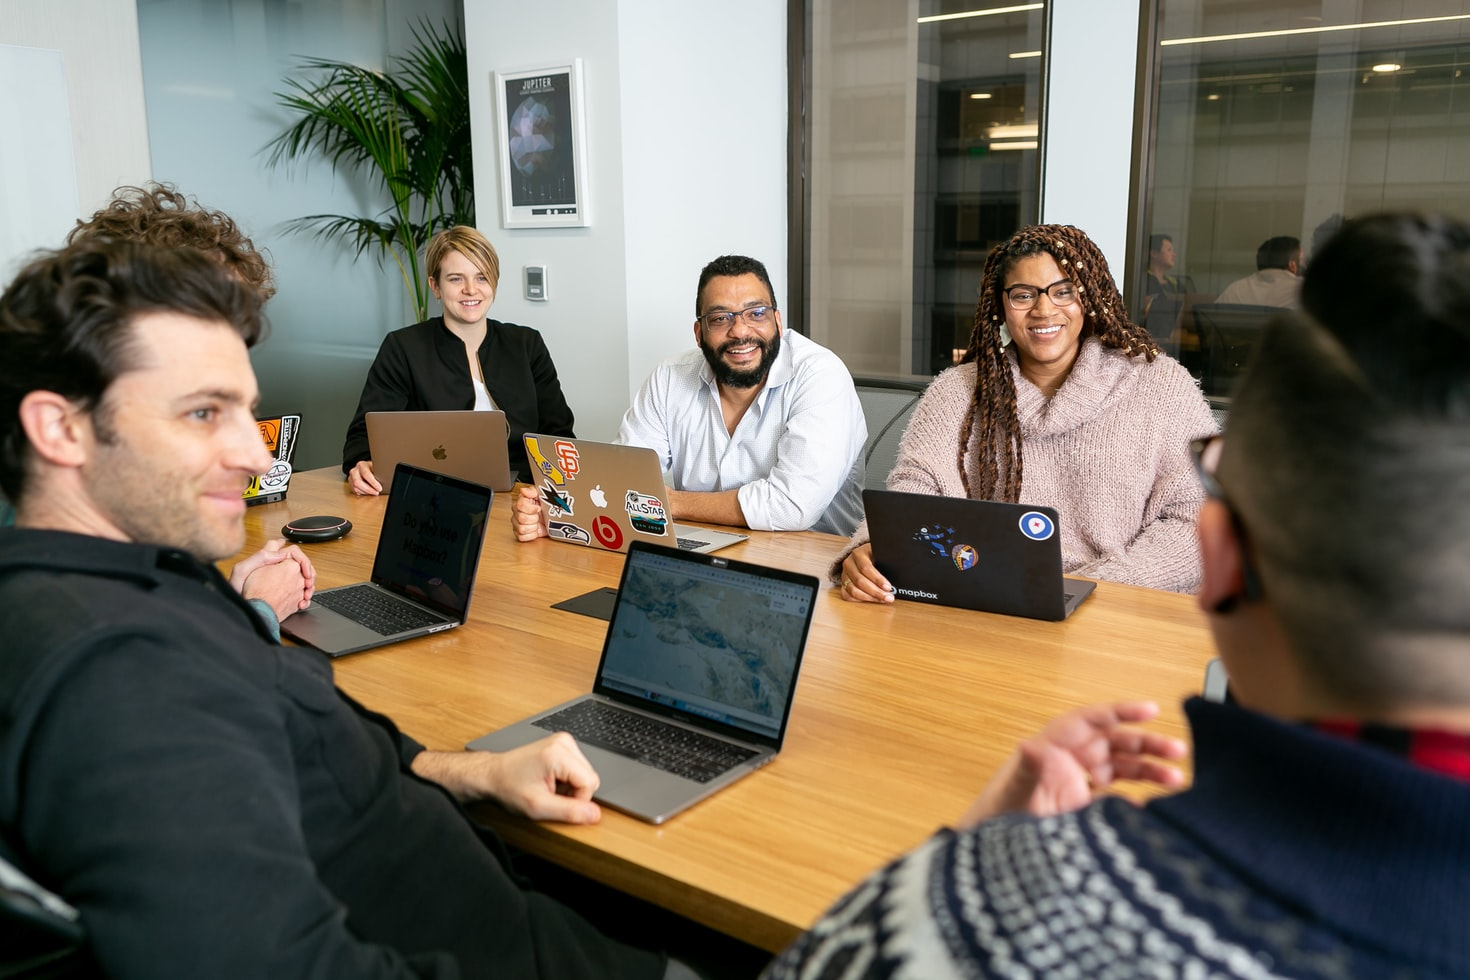 Introducing Strategic Planning Tools and Process at a High Growth Company